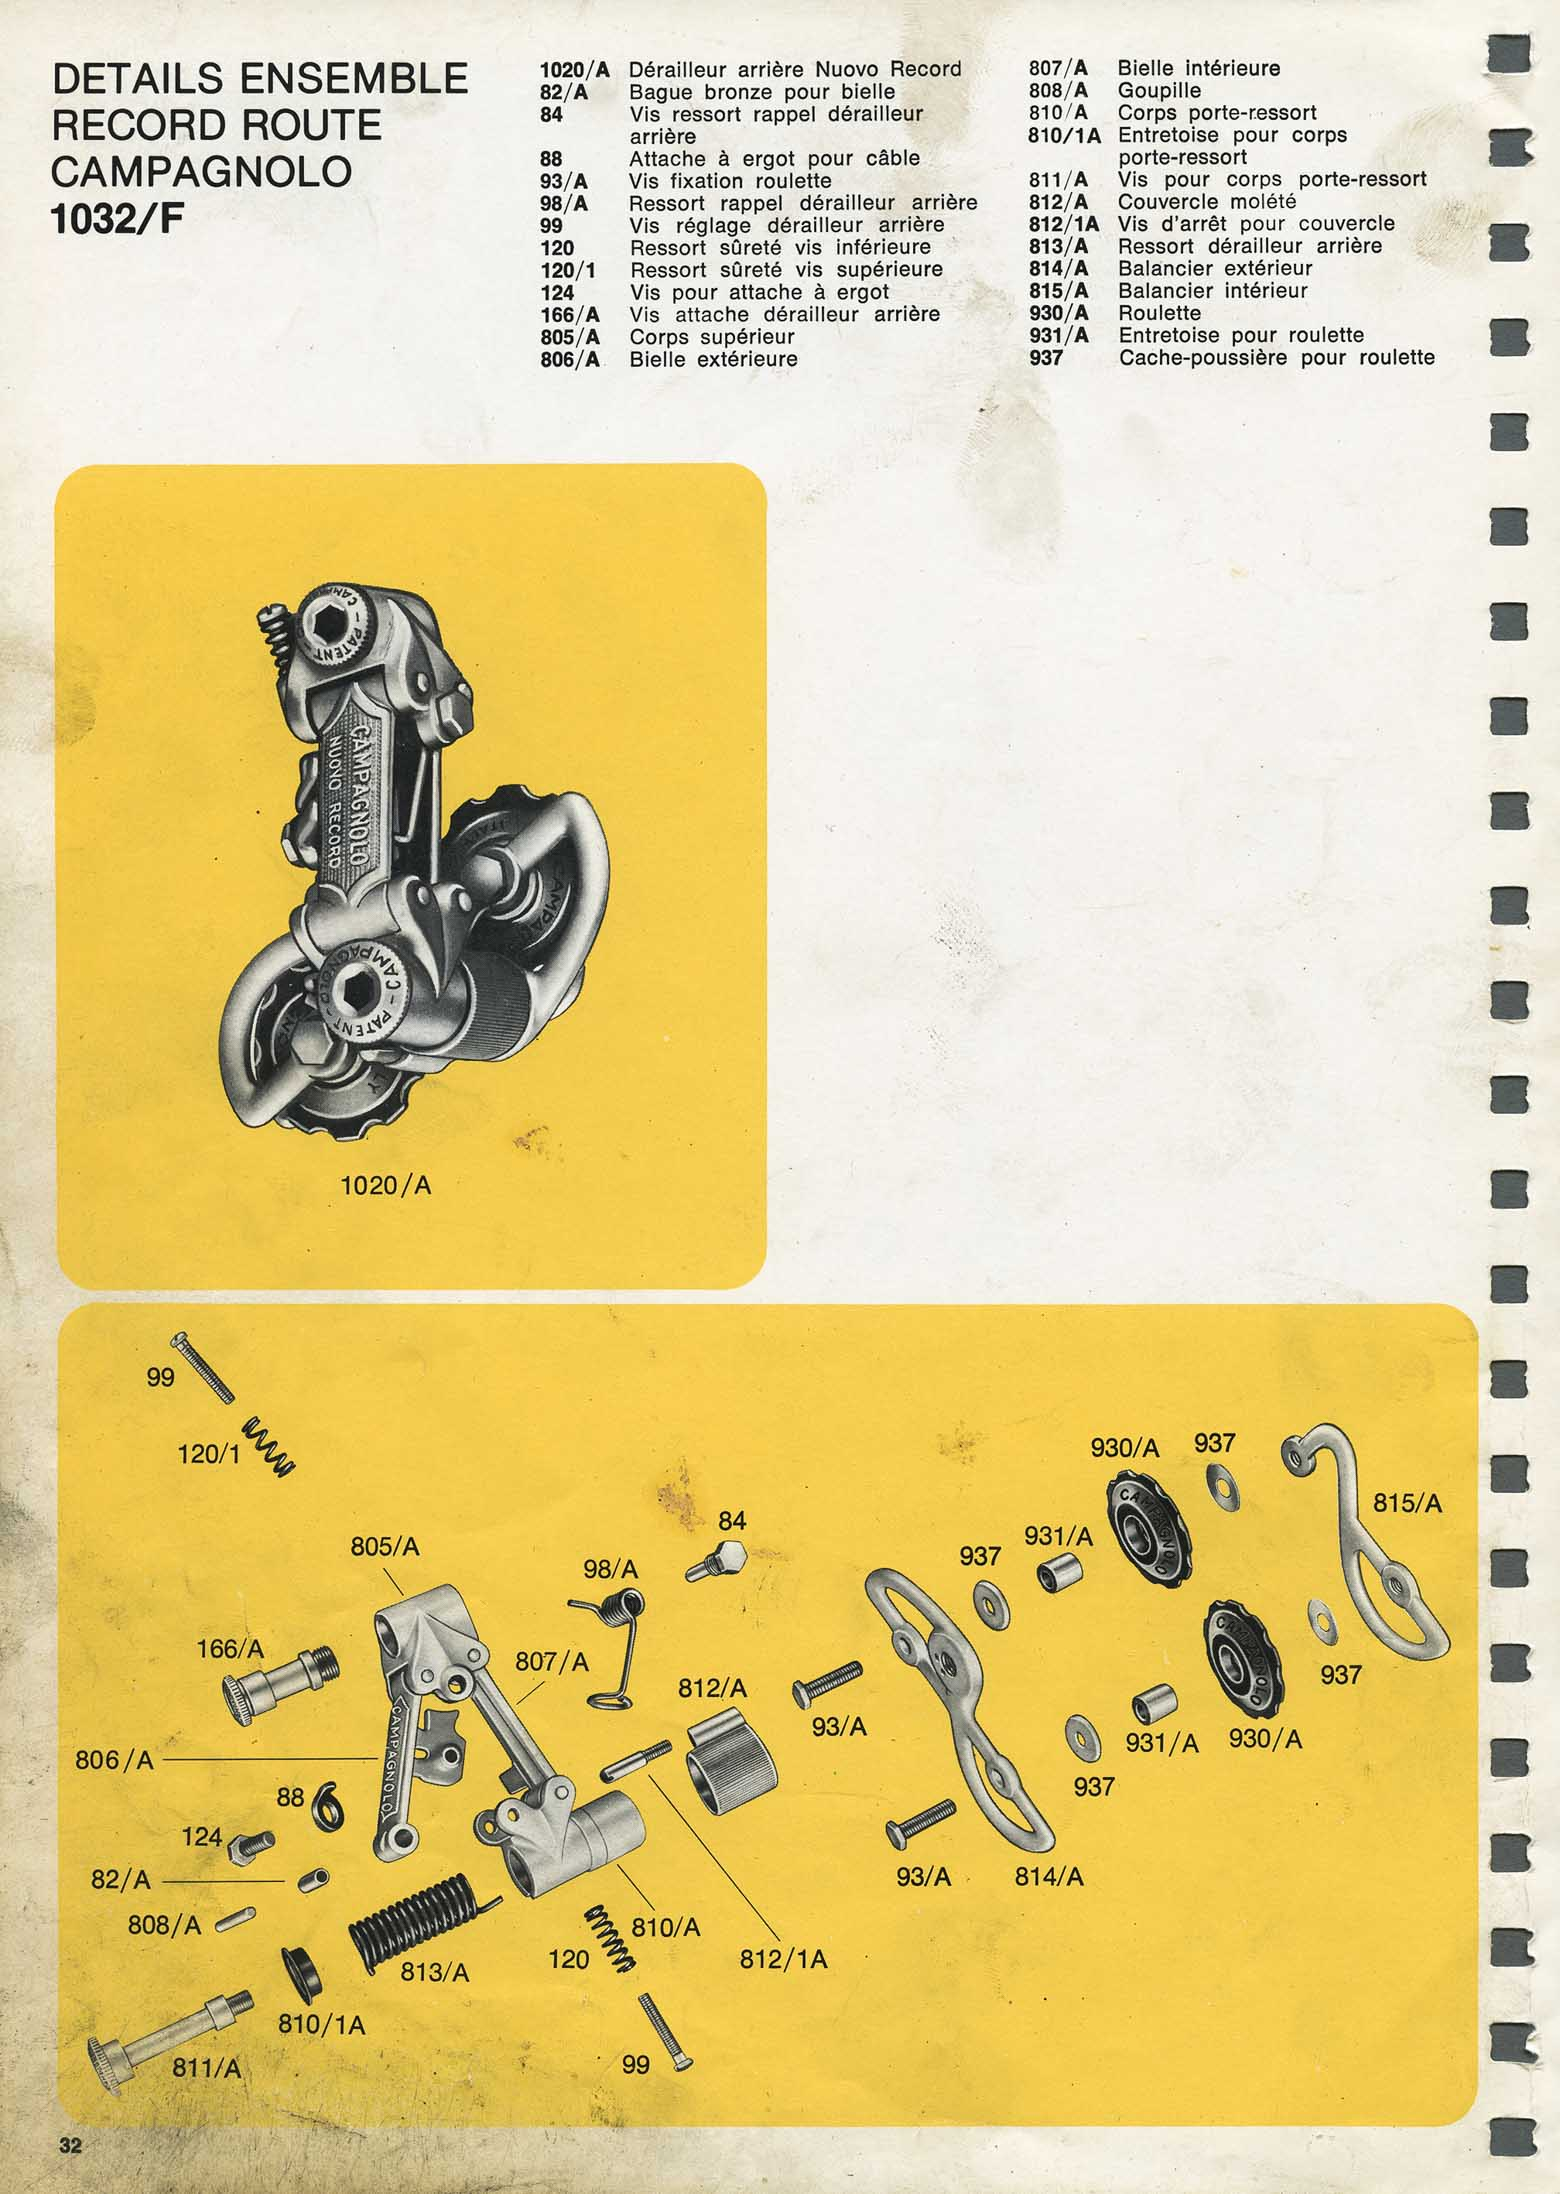 Campagnolo_-_catalogue_n_17_page_32_main_image.jpg